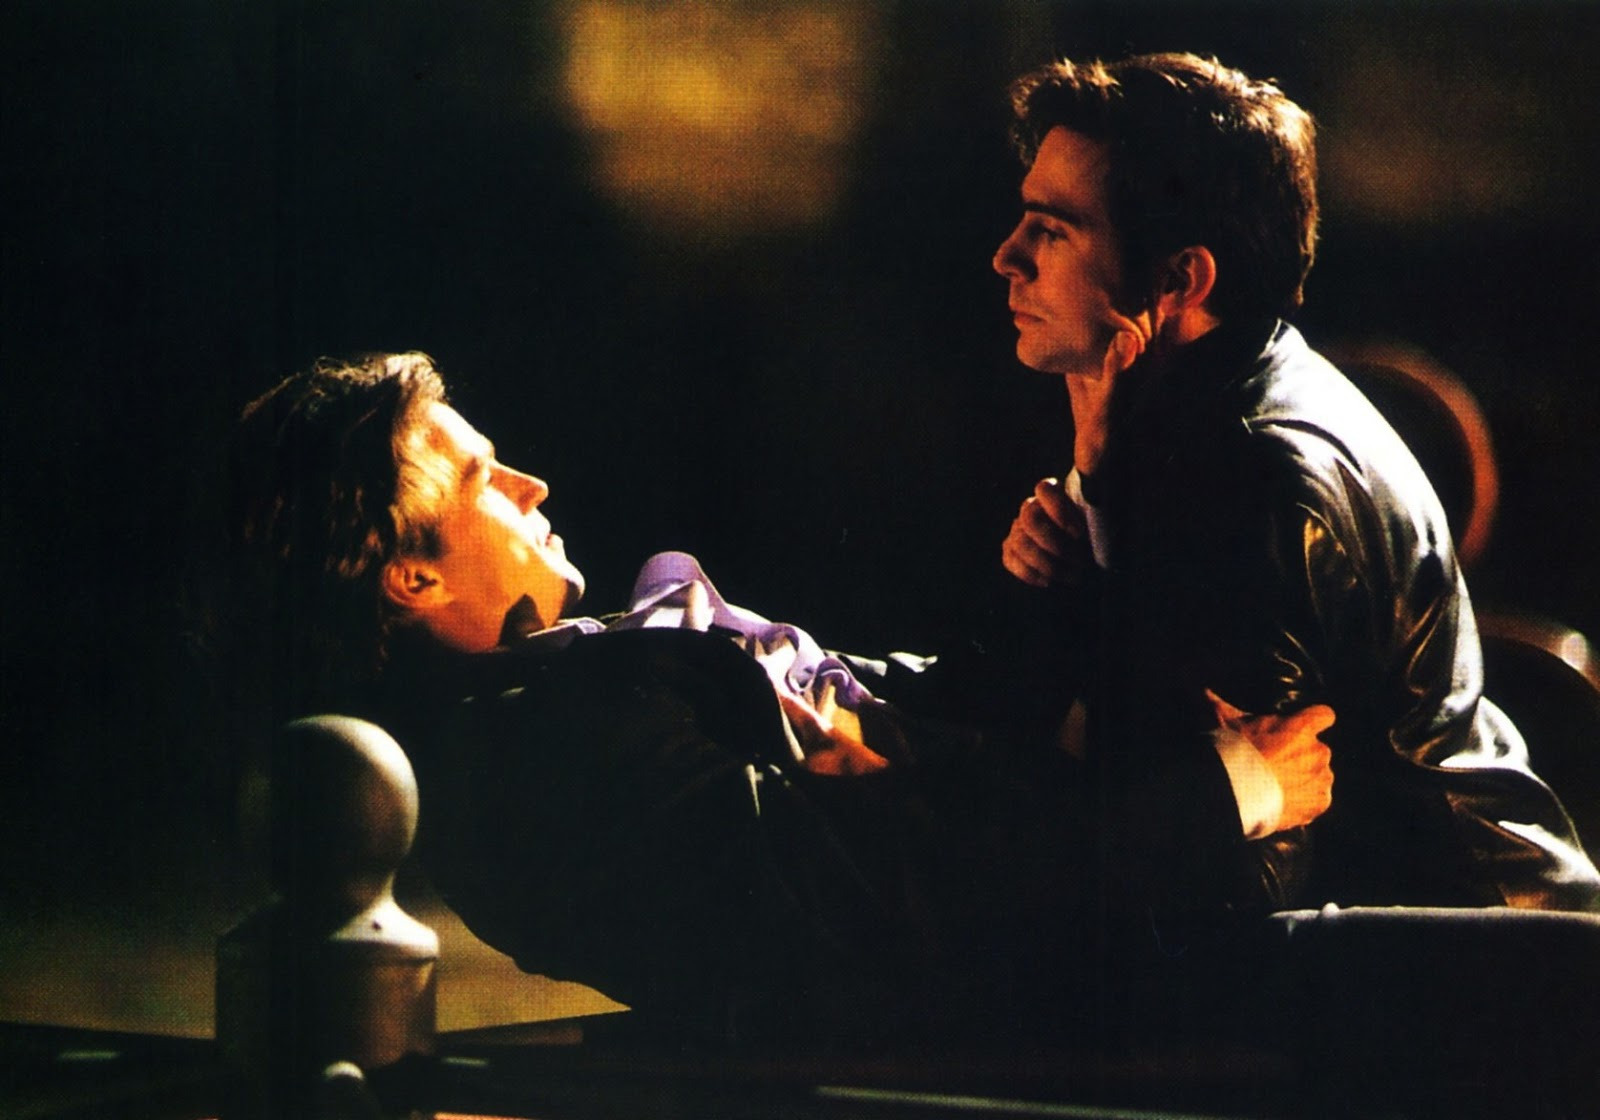 Jack Davenport (r) confronts his now vampire friend Stephen Moyer (l) in Ultraviolet (1998)